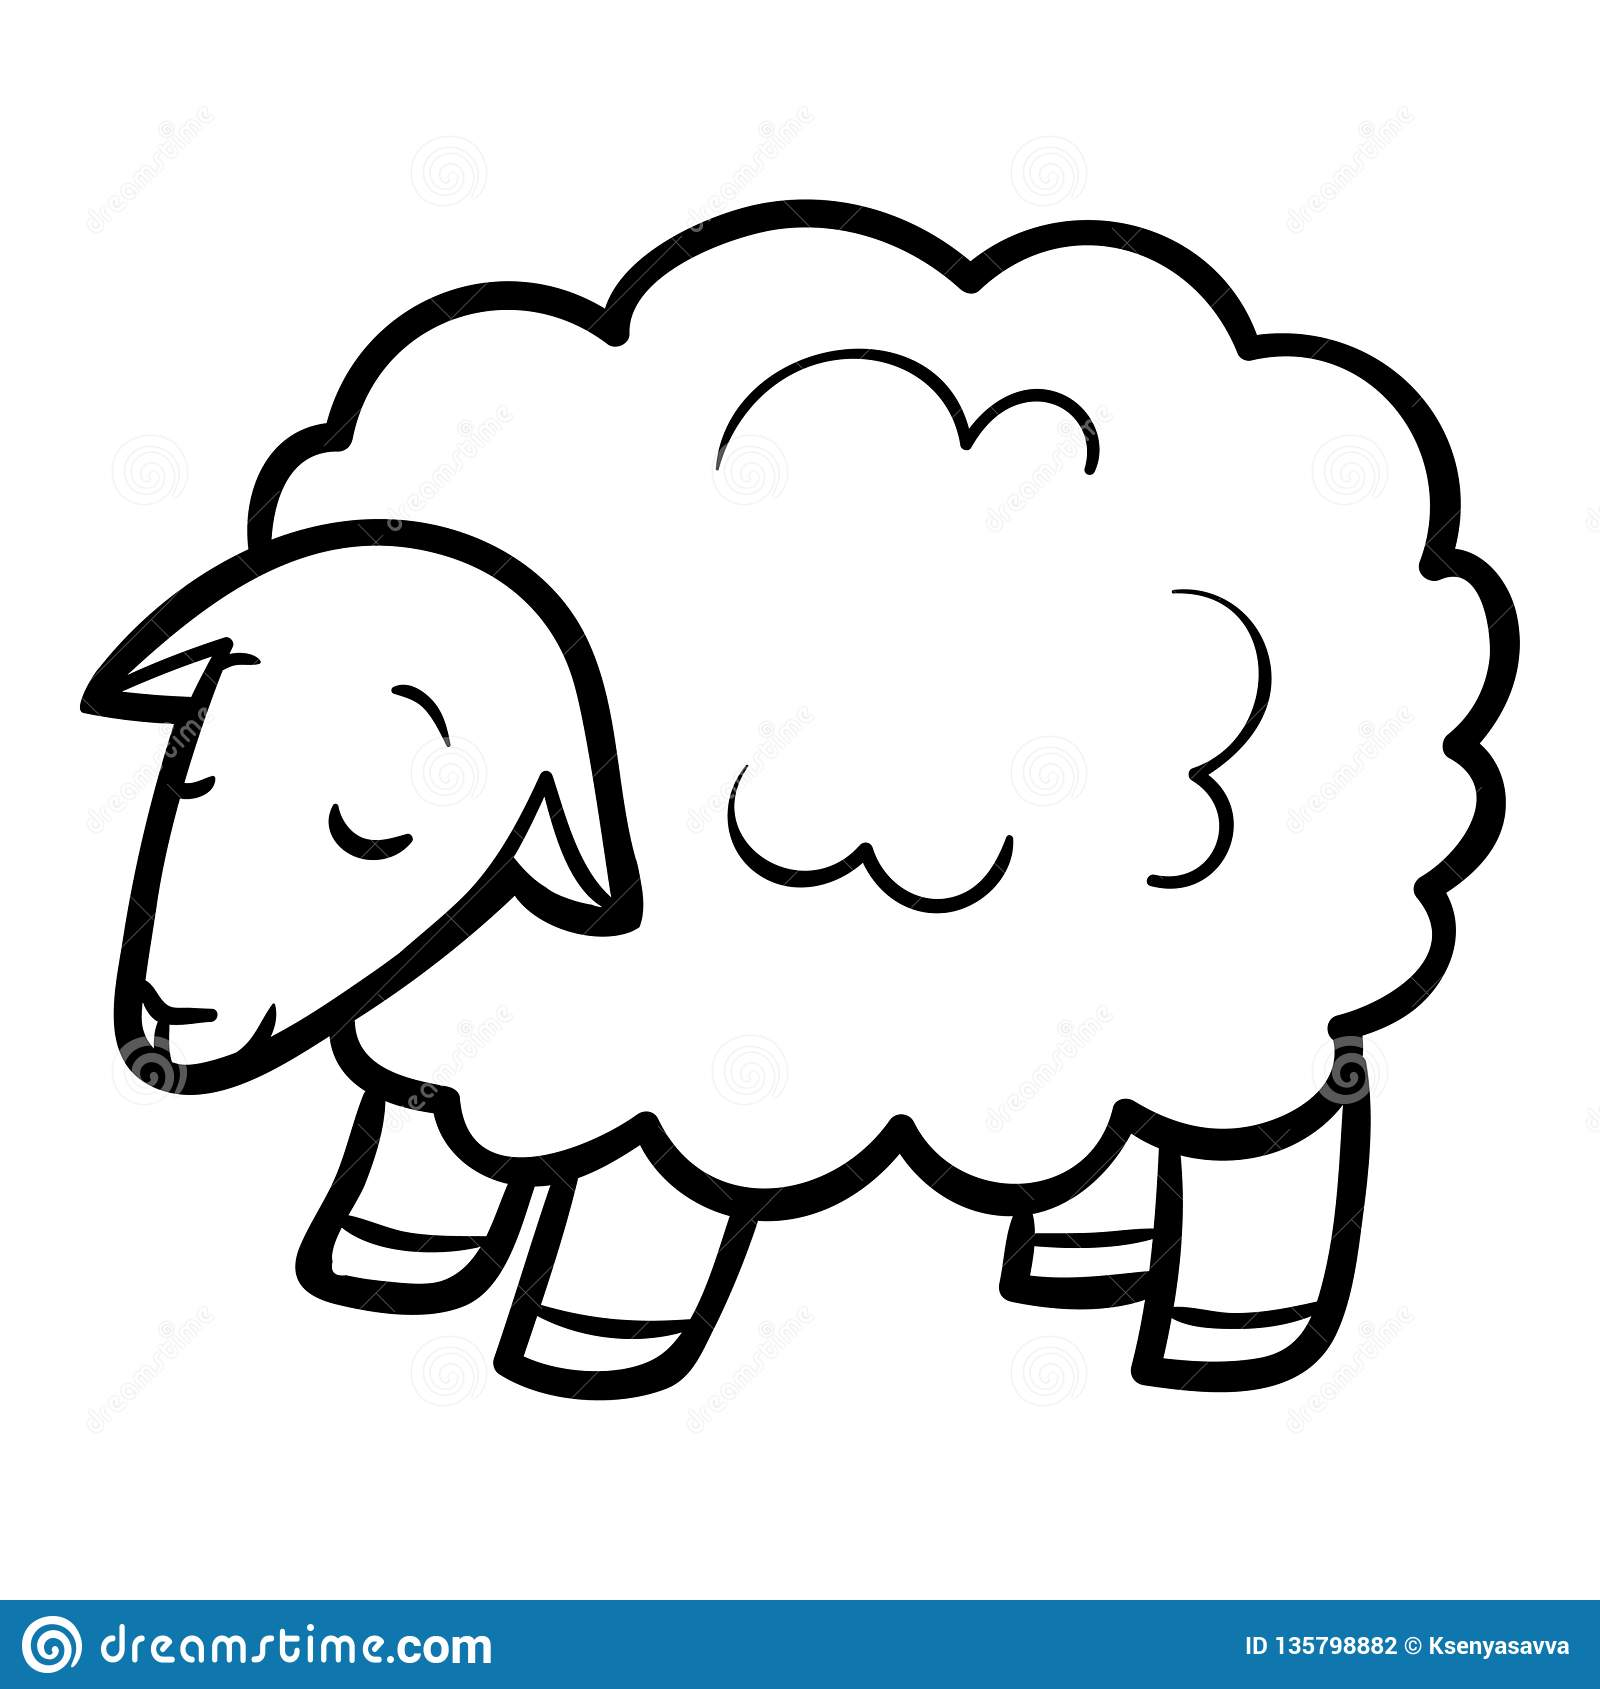 Coloring Book Sheep Stock Vector Illustration Of Outline